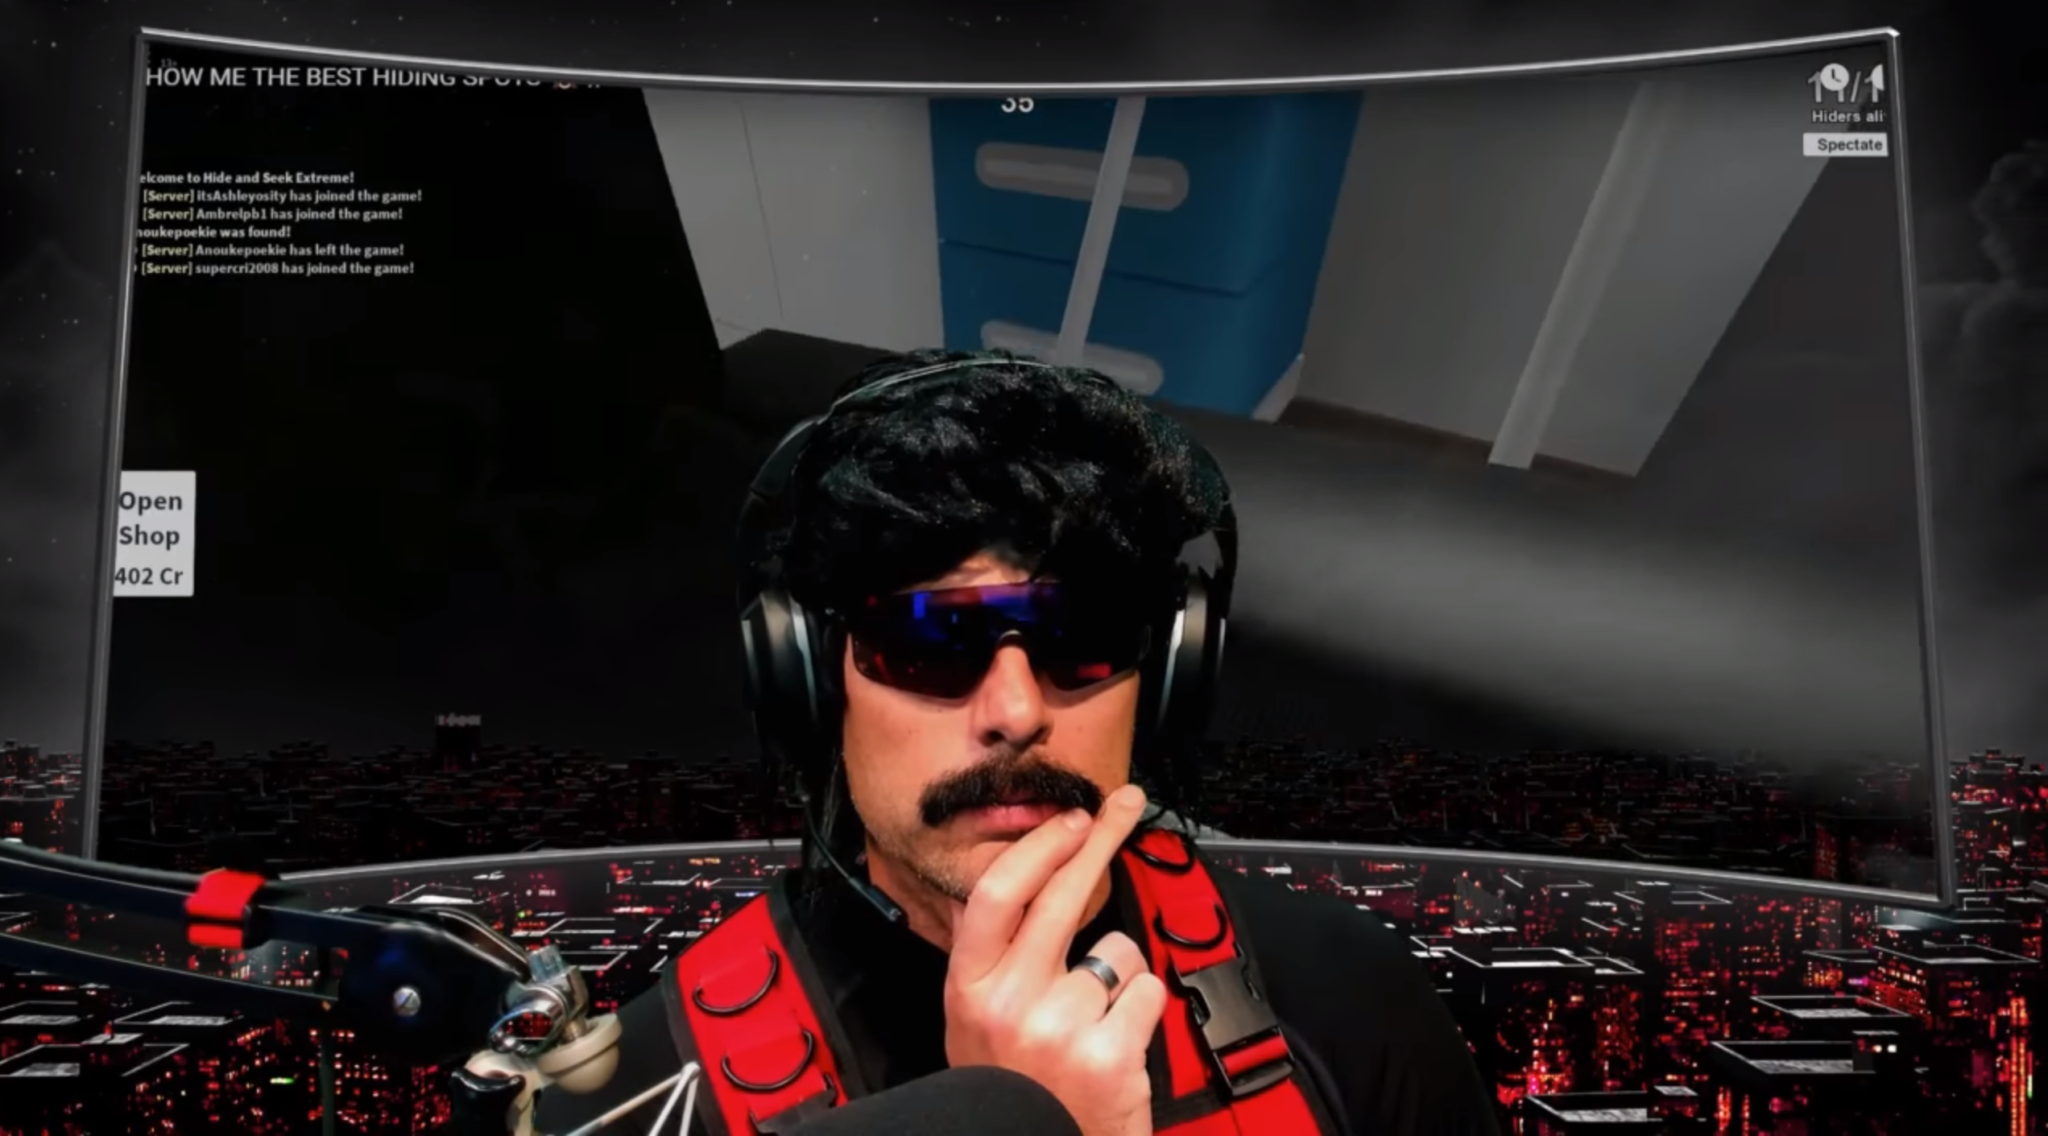 Dr Disrespect during his final Twitch stream on June 25.